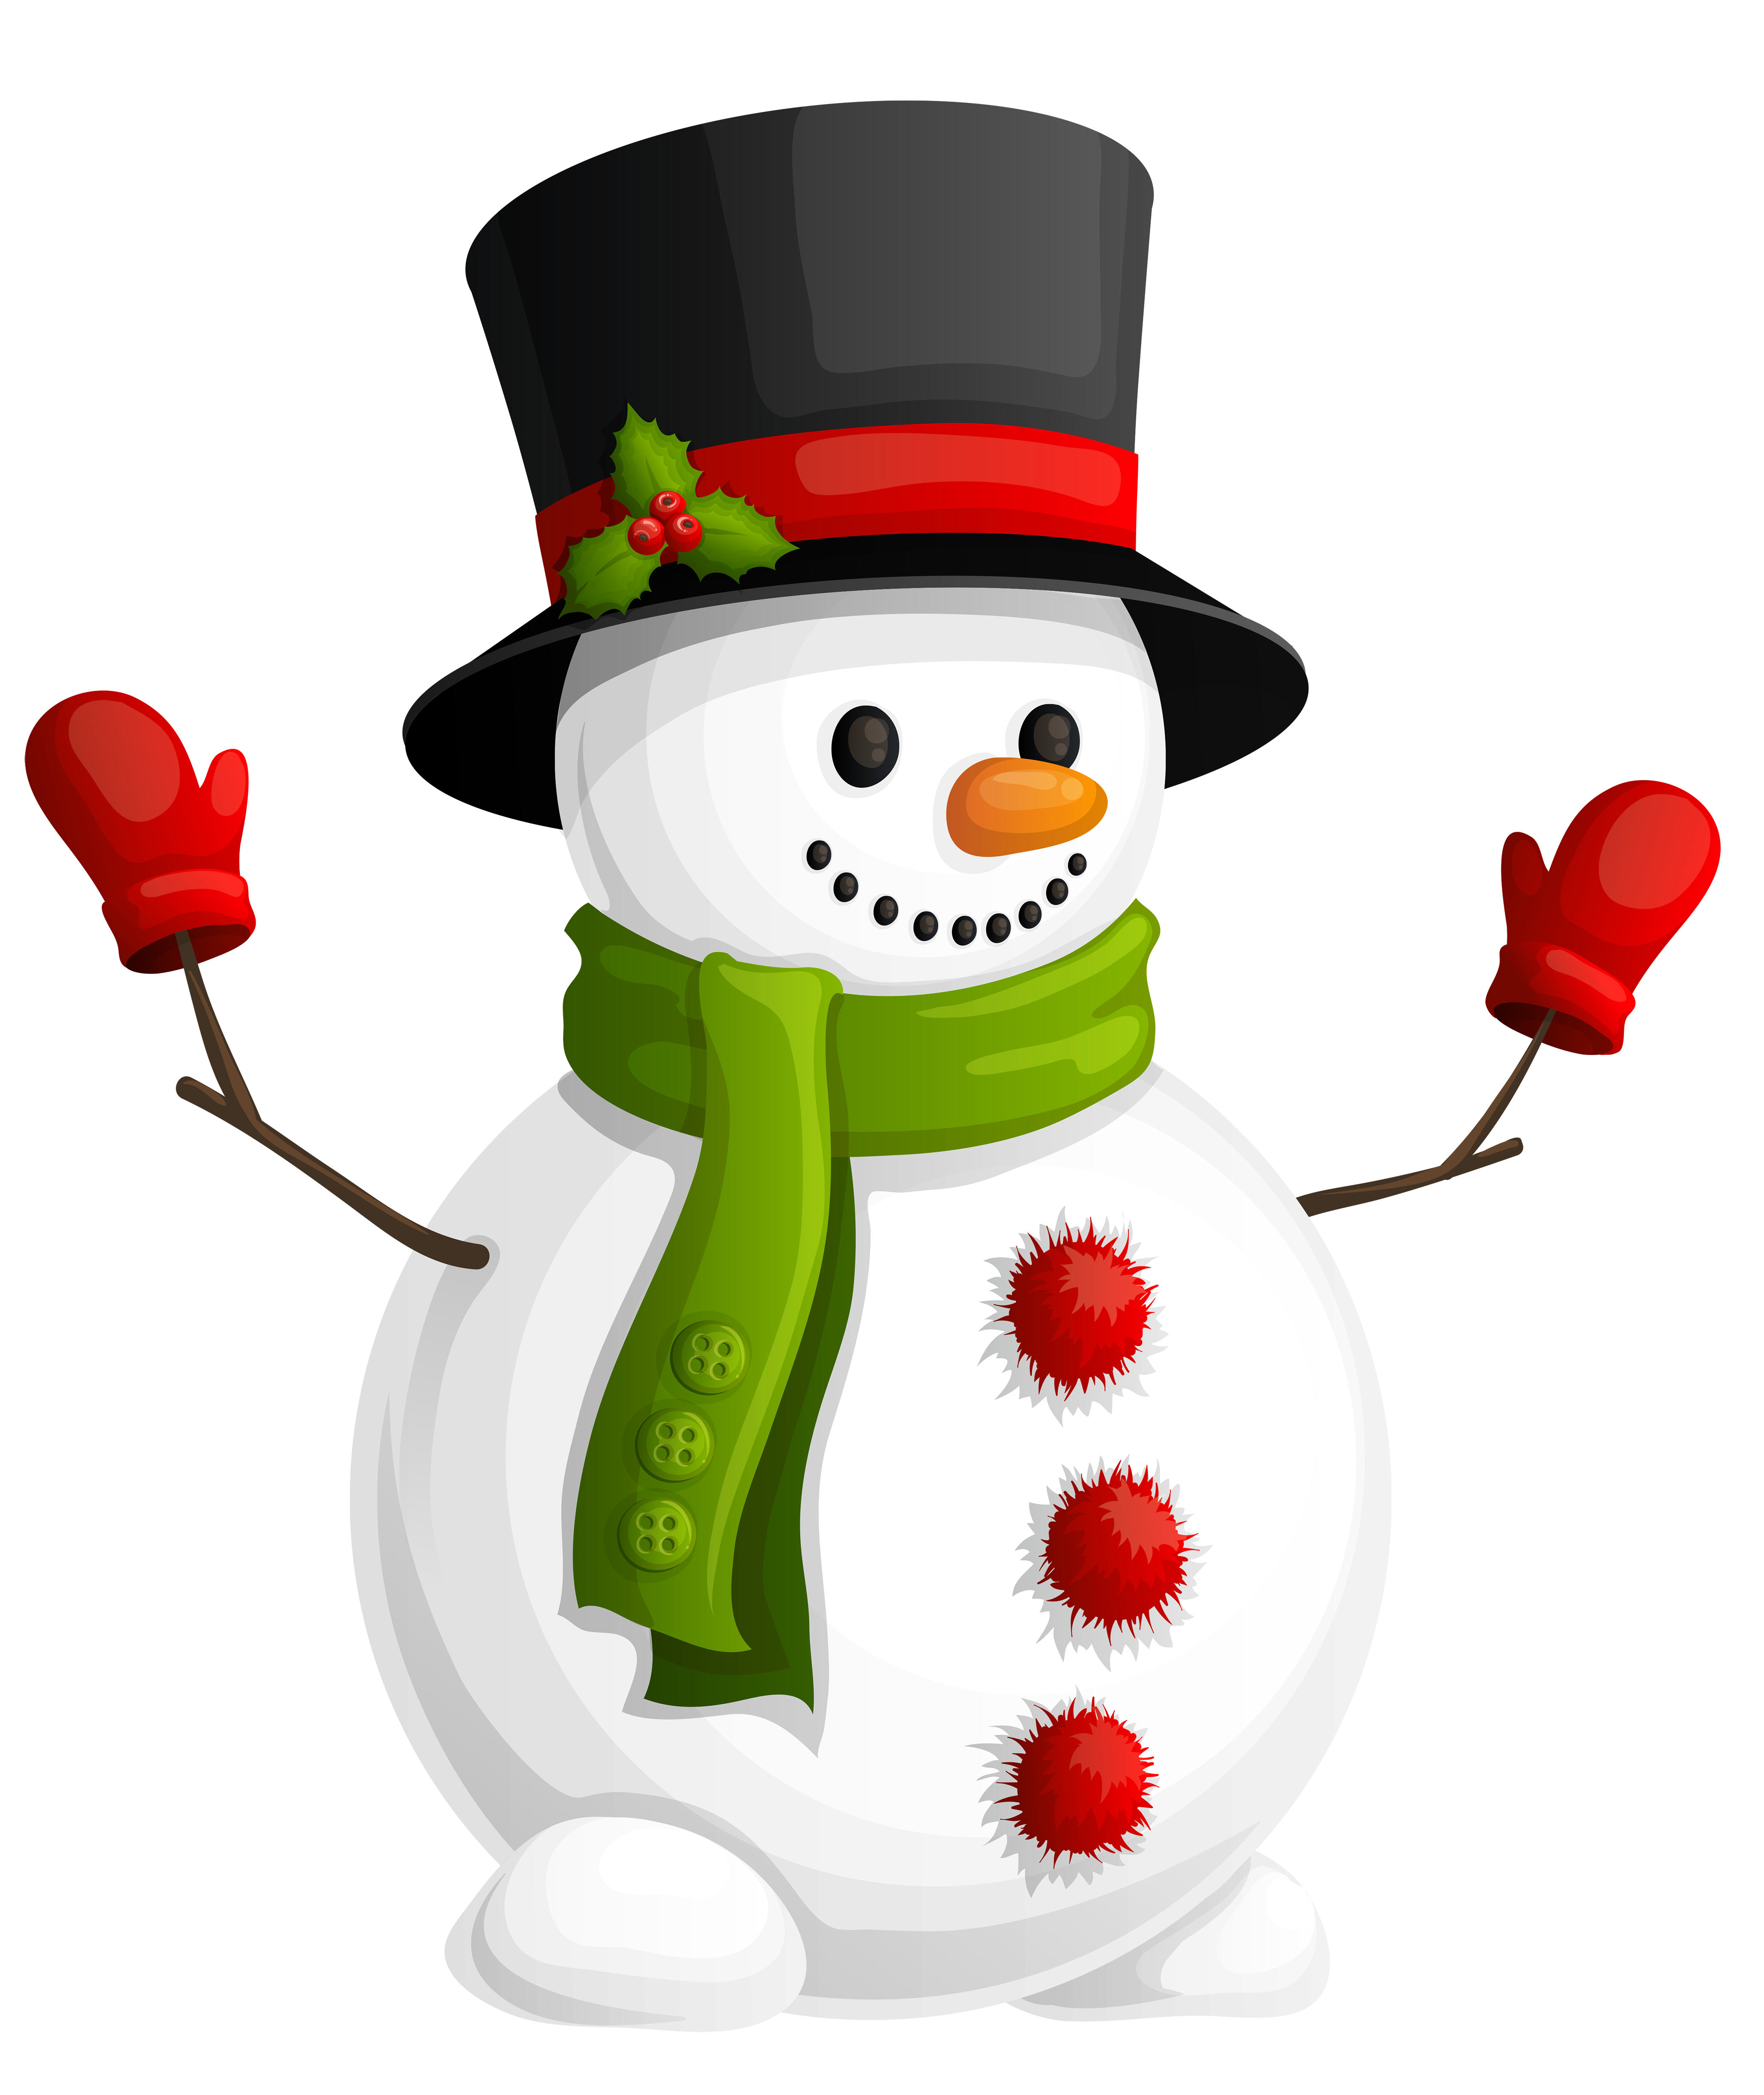 snowman clipart at getdrawings com free for personal use snowman rh getdrawings com snowman clipart to print snowman clipart free